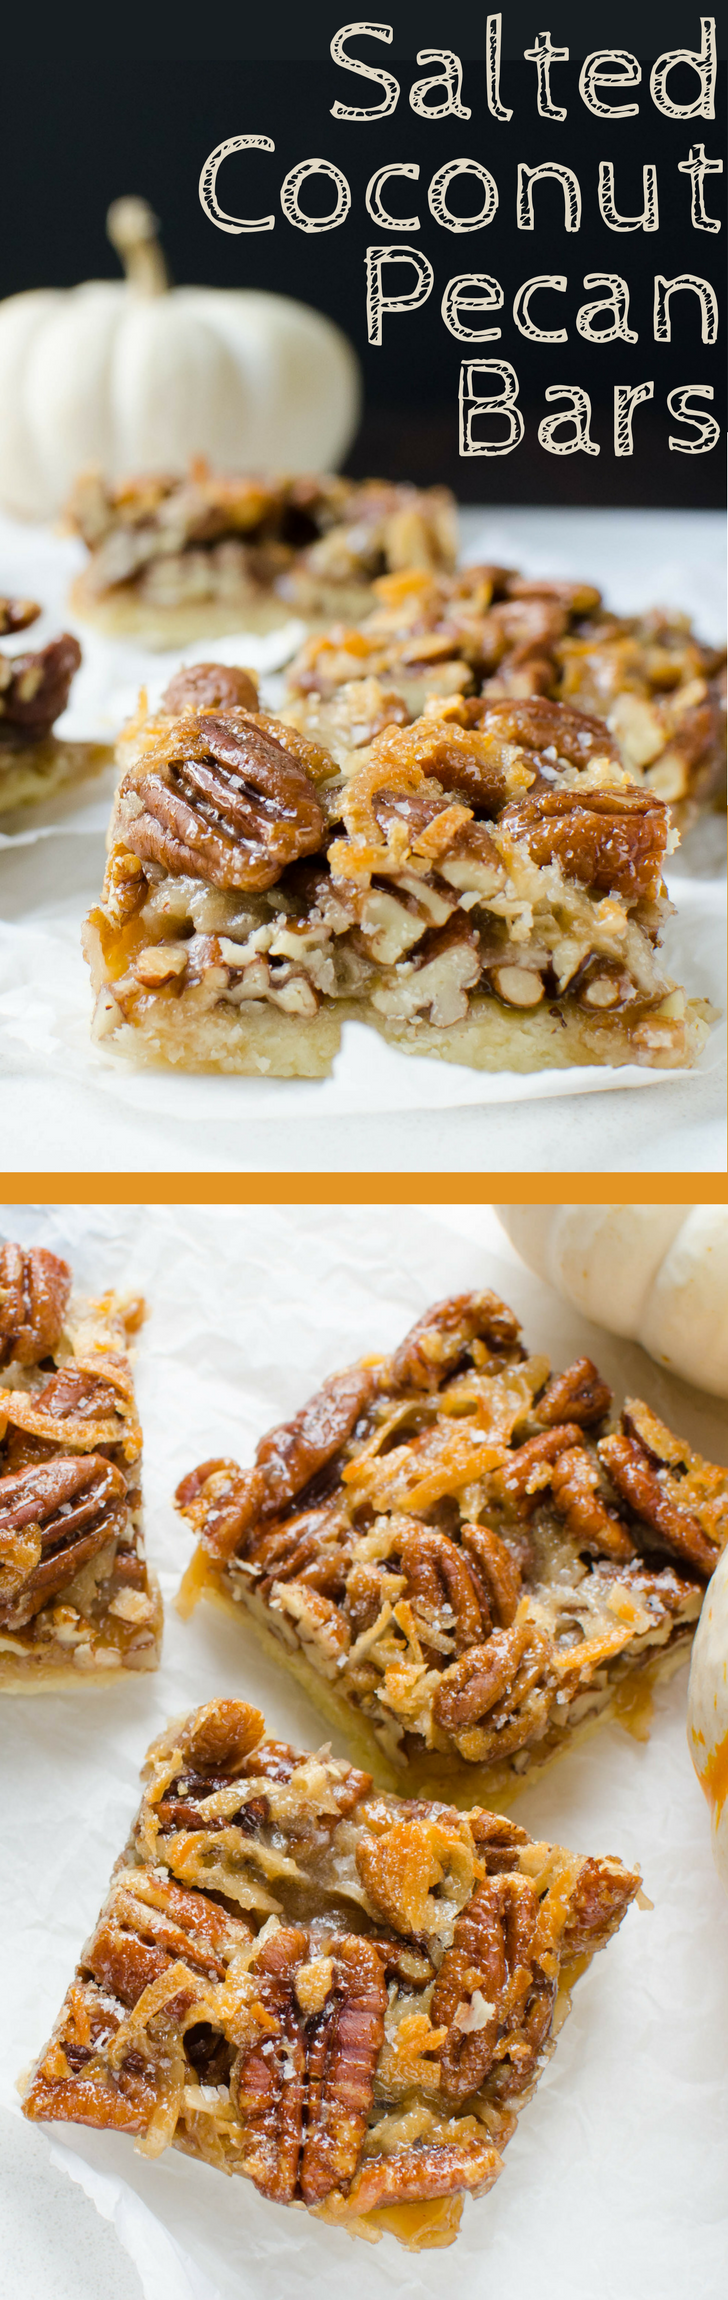 Looking for the ultimate bar cookie recipe? These foolproof  Salted Coconut Pecan Bars are the best of the best with a balanced sweet and salty bite.